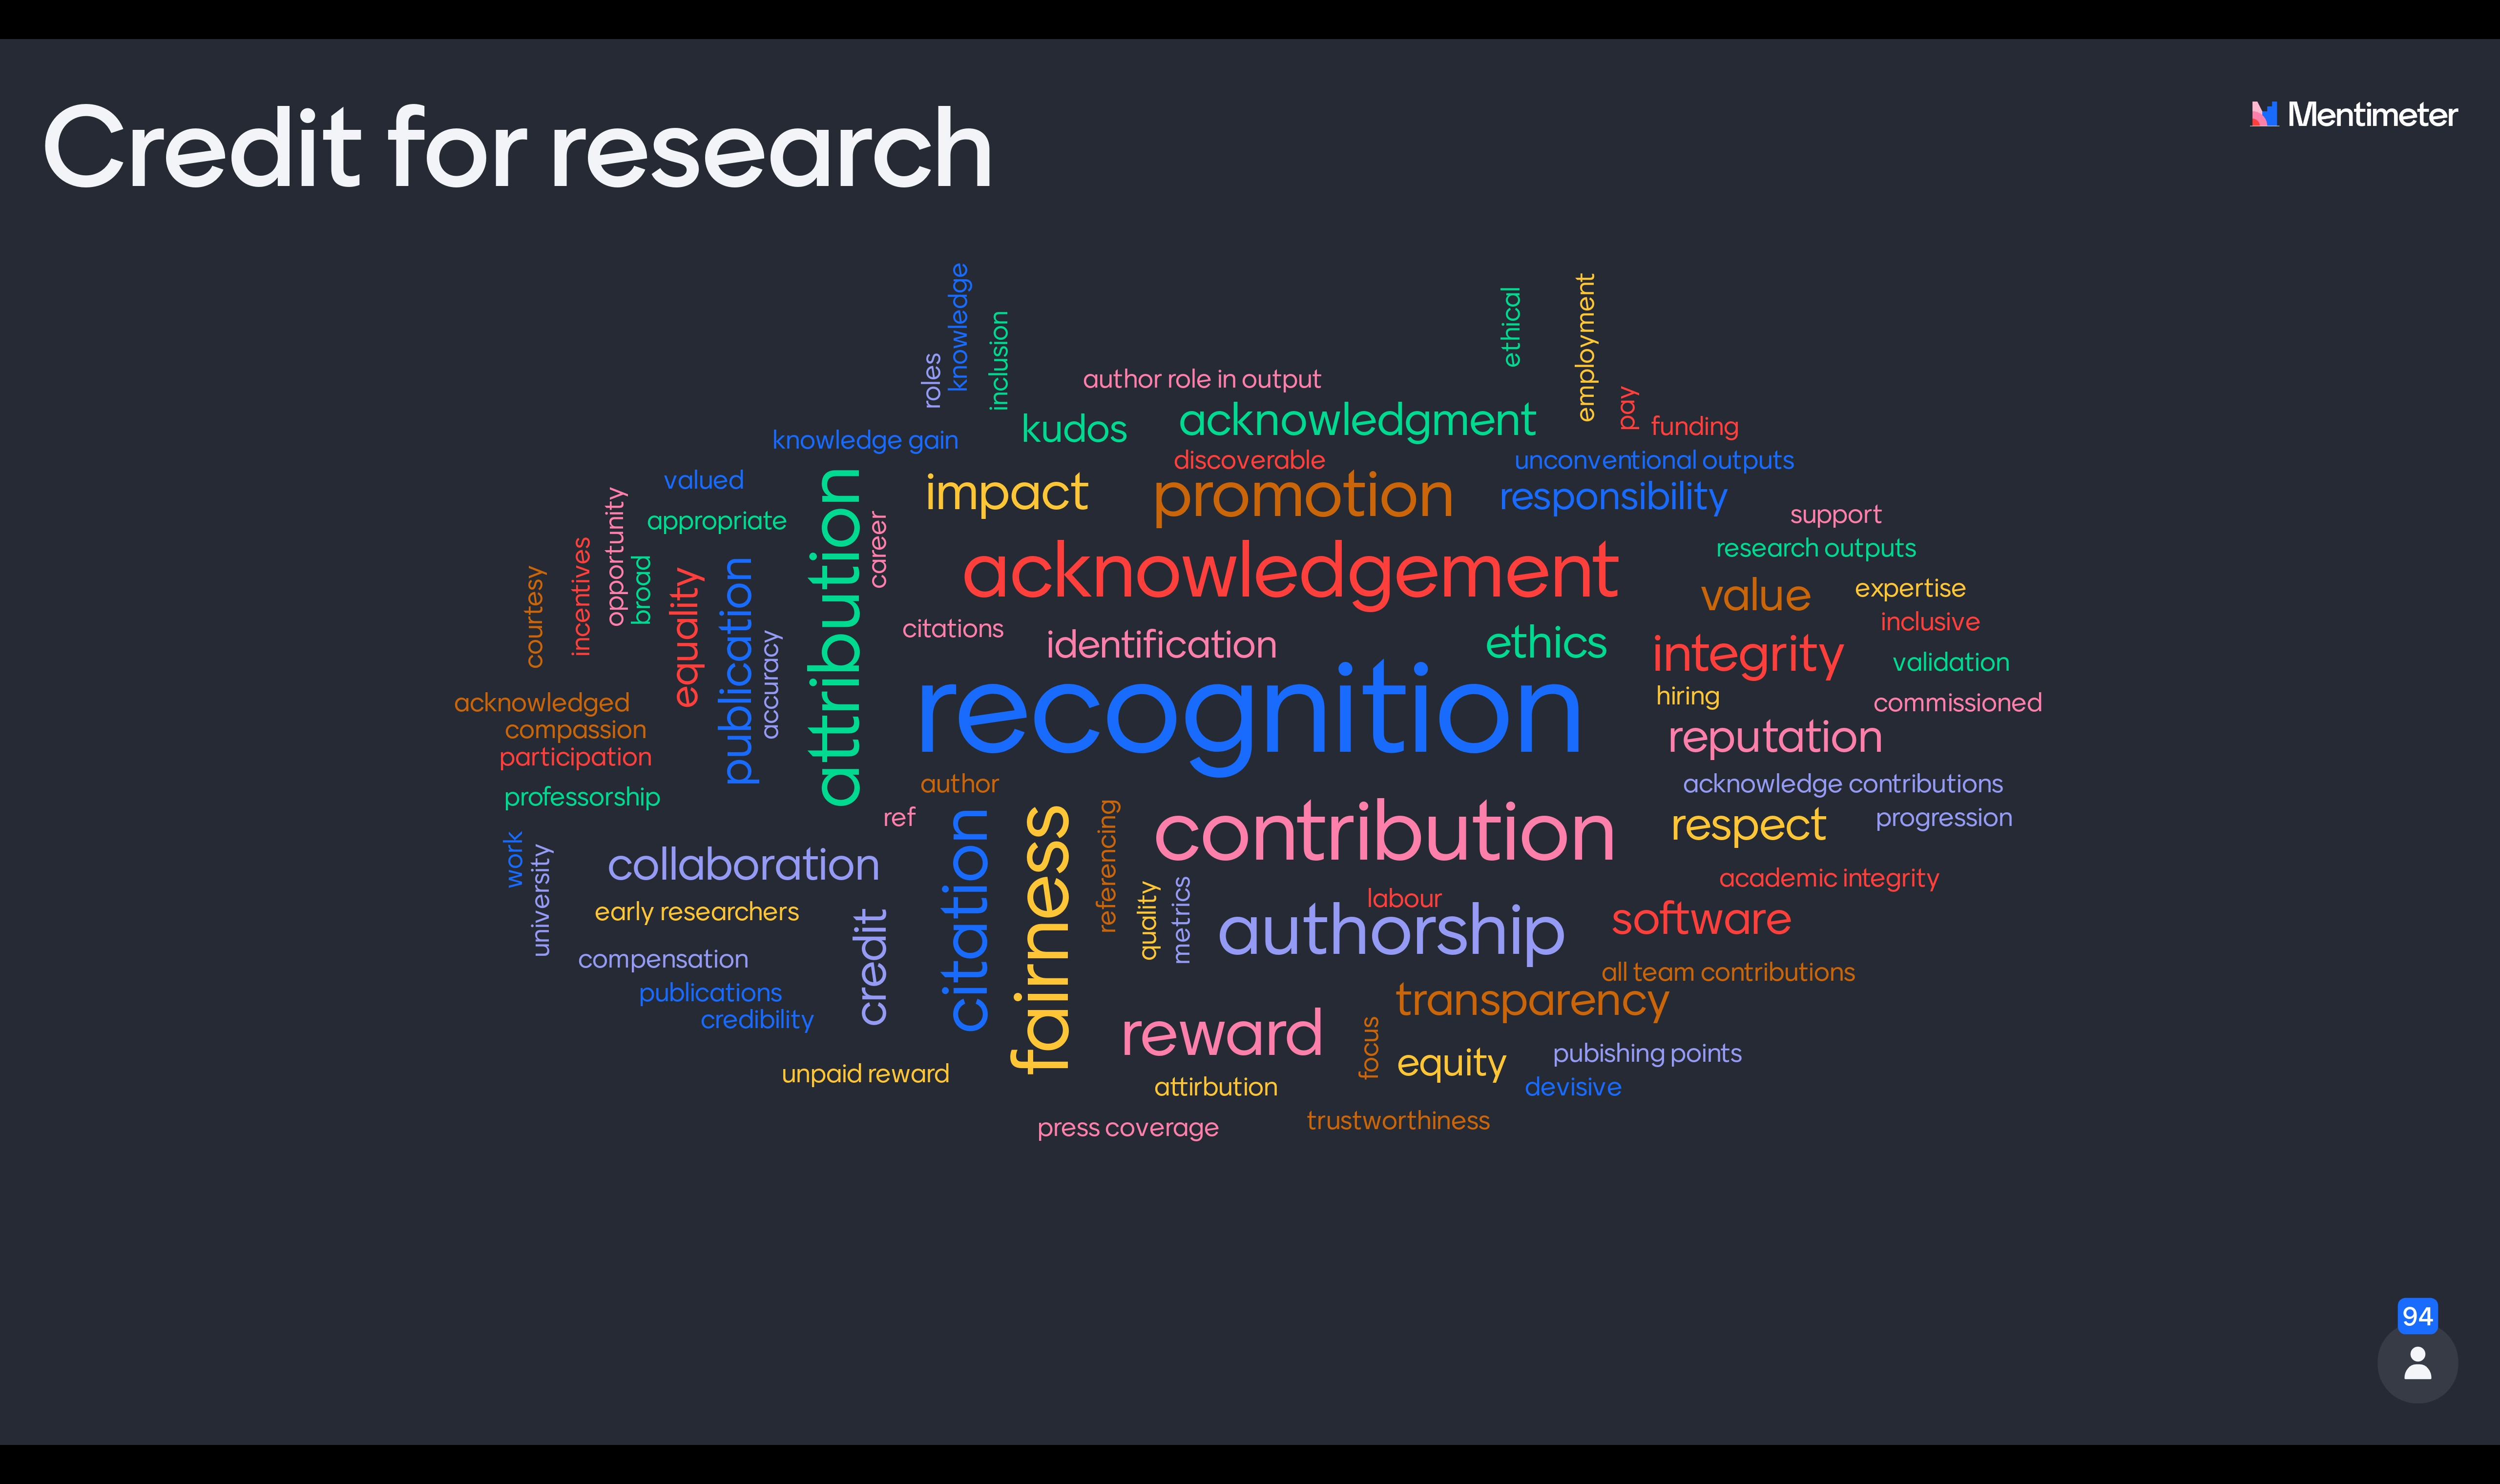 Word cloud of What Credit for Research means: acknowledgement, recognition, contribution, promotion, fairness, citation, authorship and reward